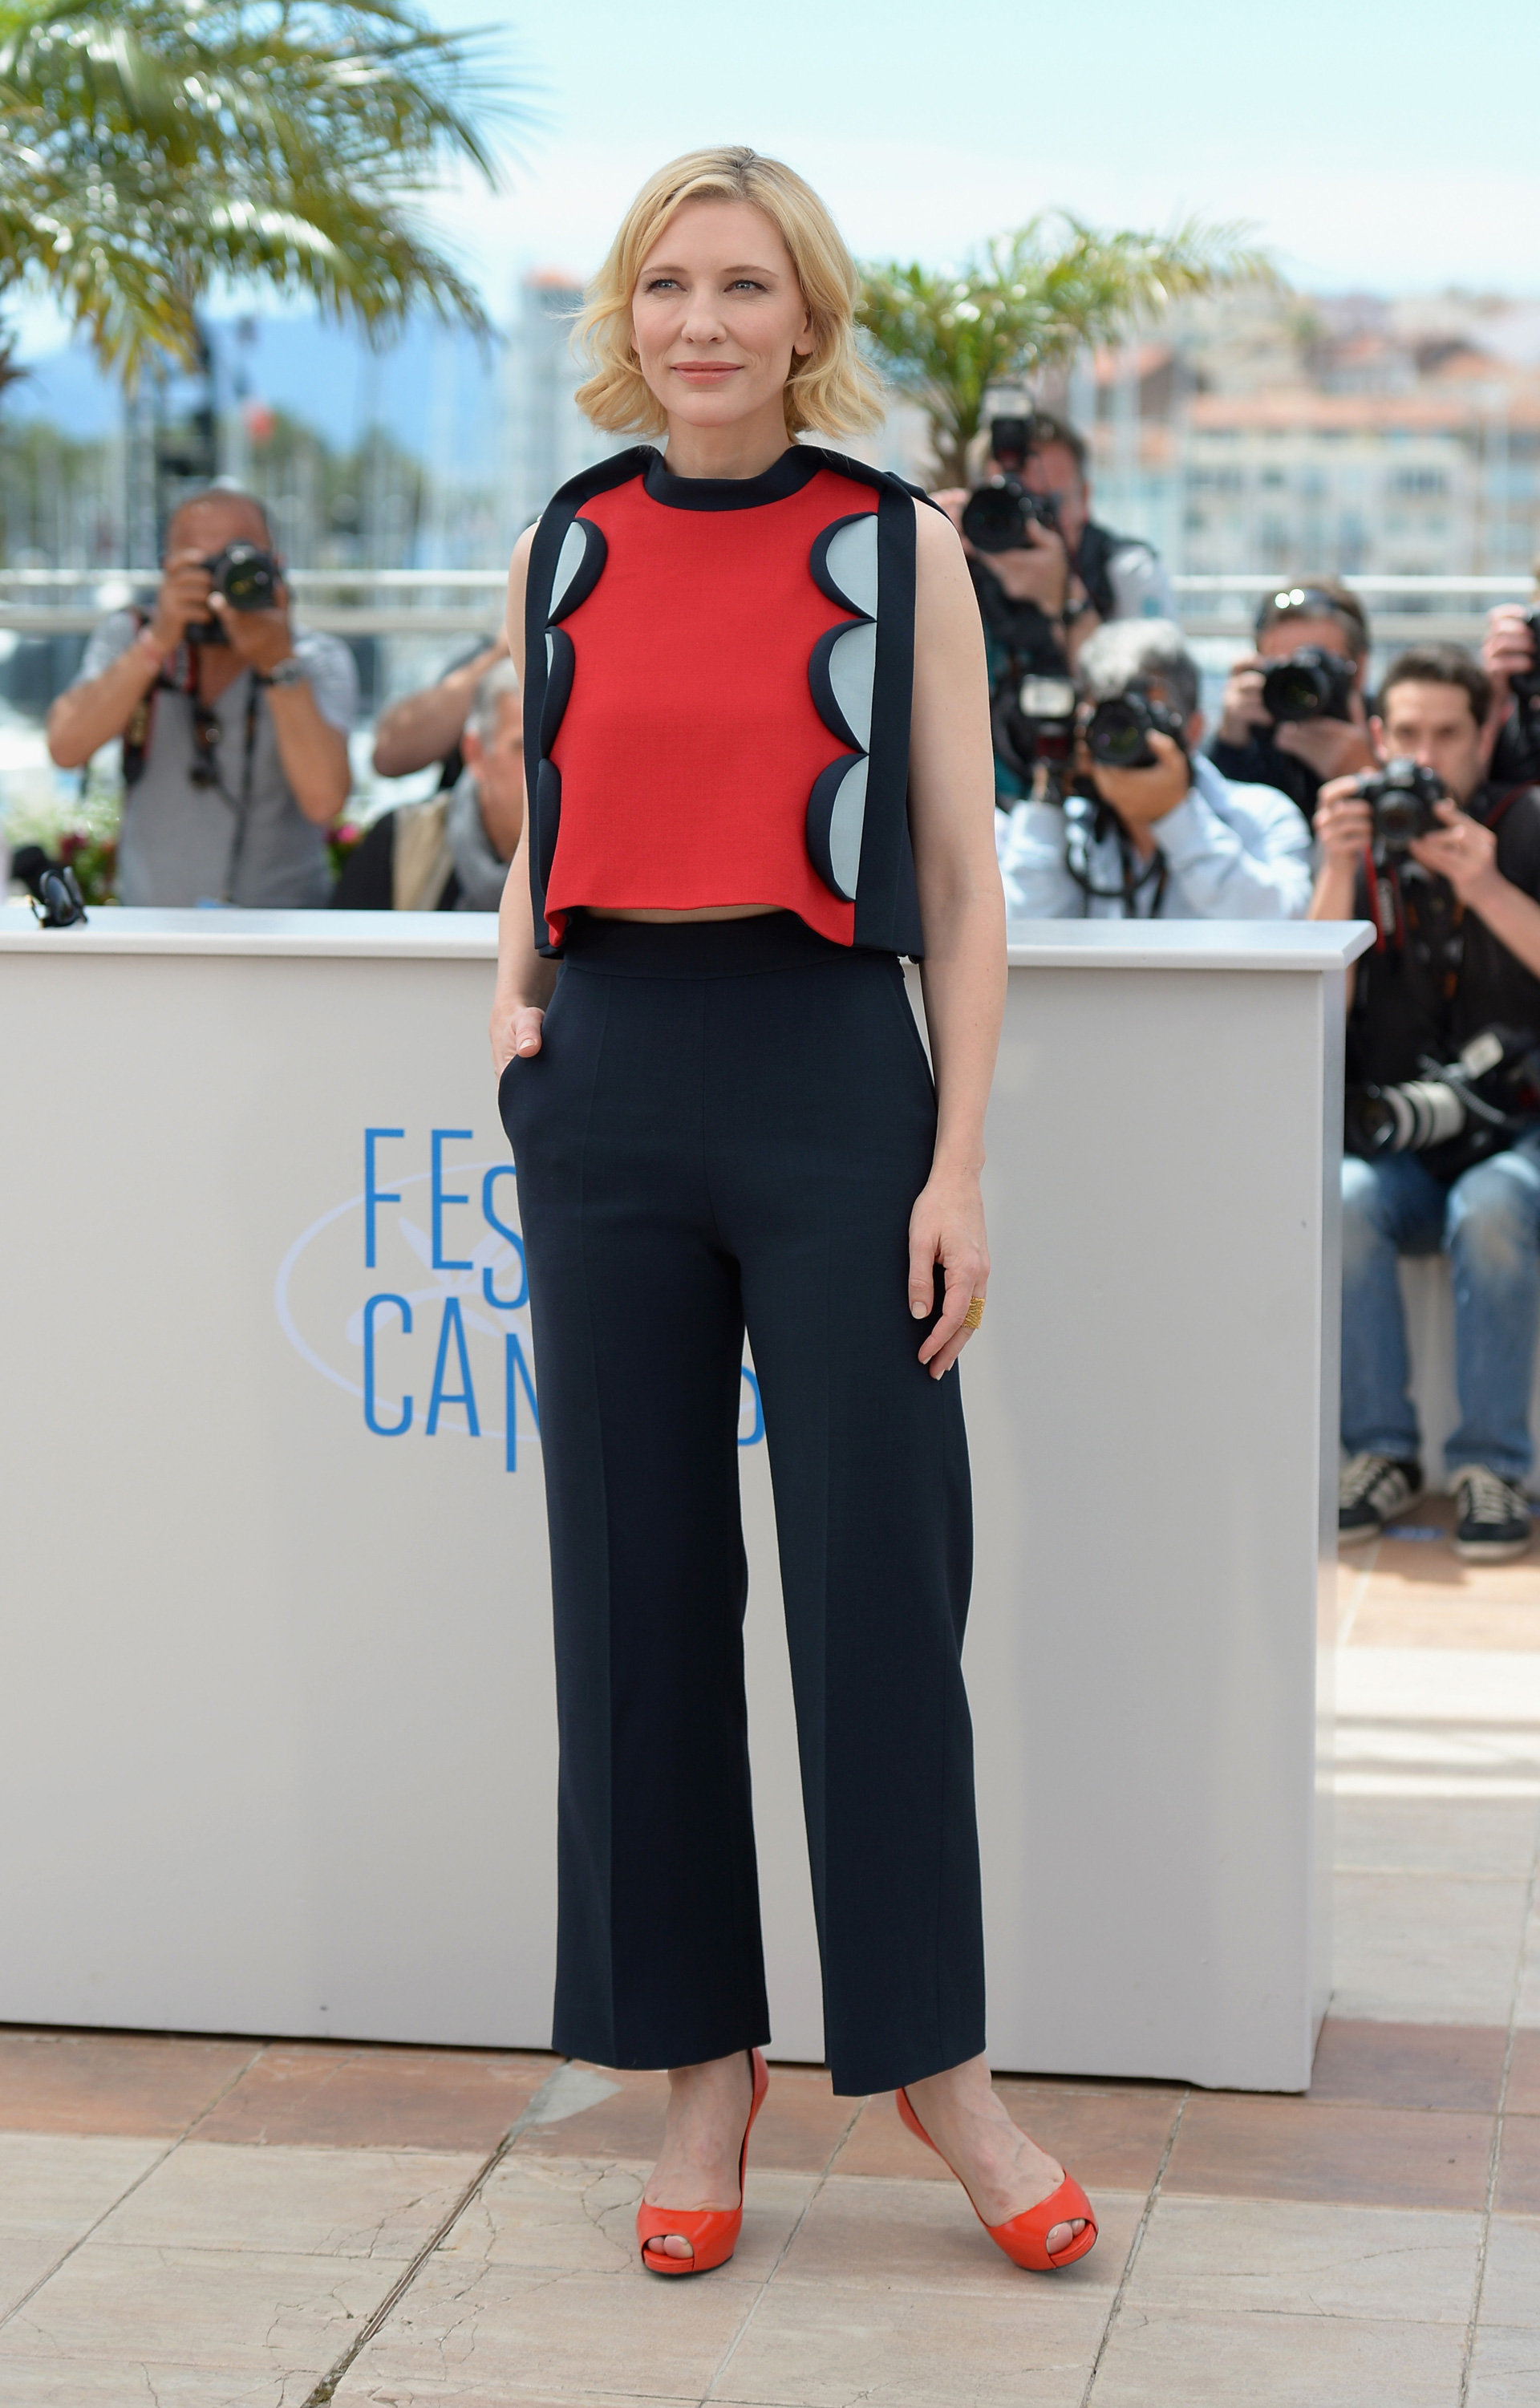 Cate Blanchett at the Cannes FIlm Festival wearing a Delpozo Fall 2014